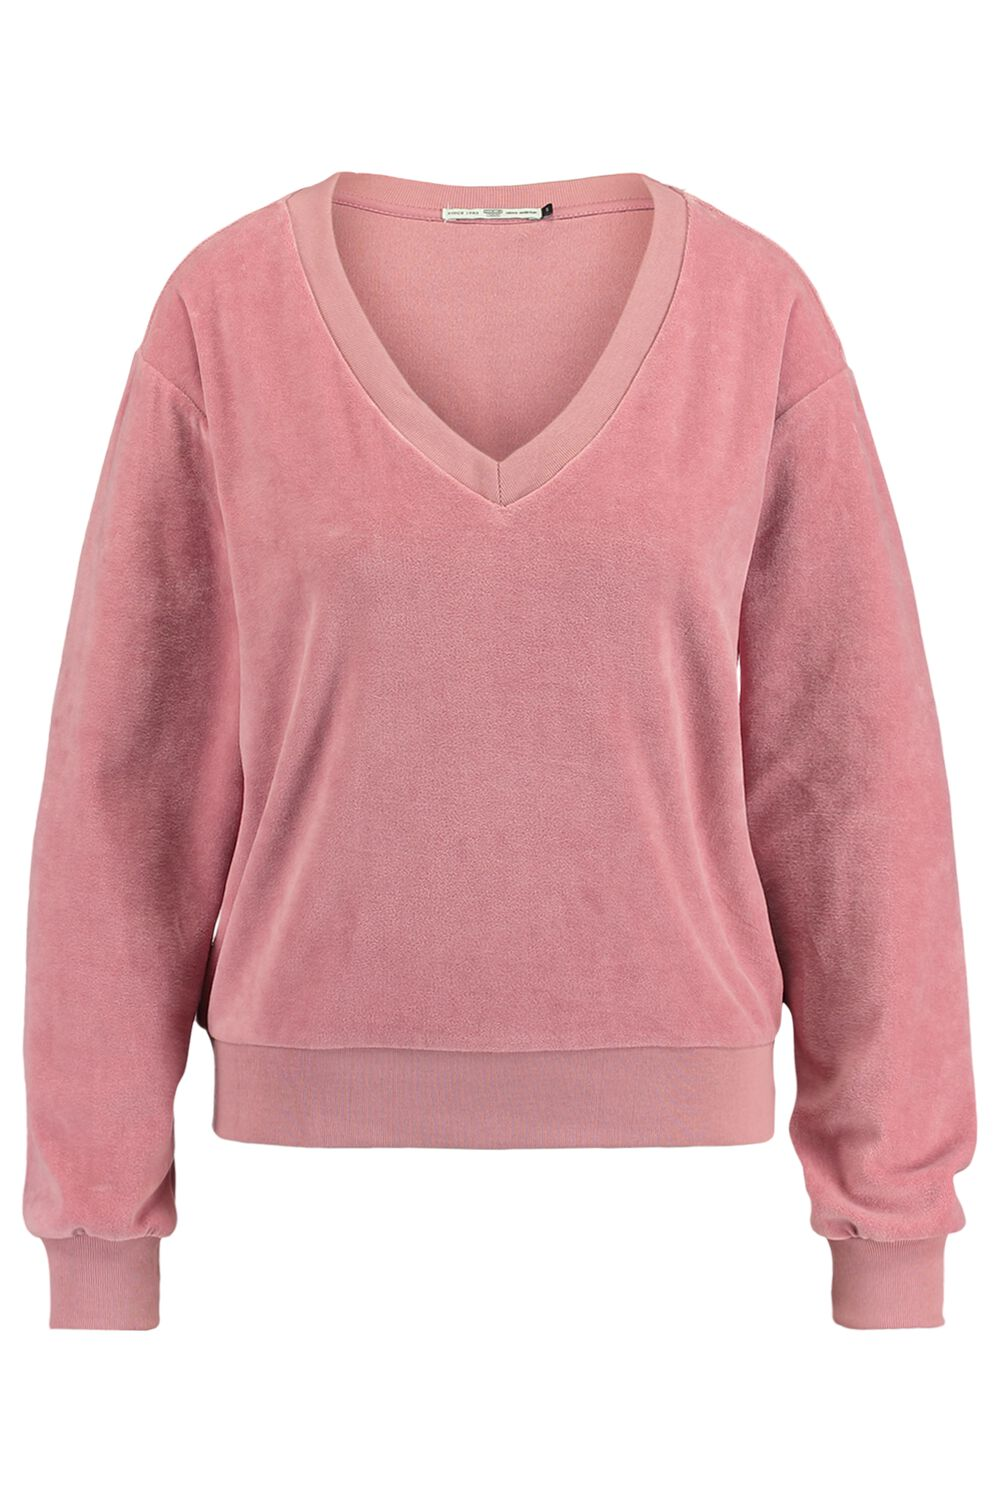 America Today Dames Sweater Shanine Roze